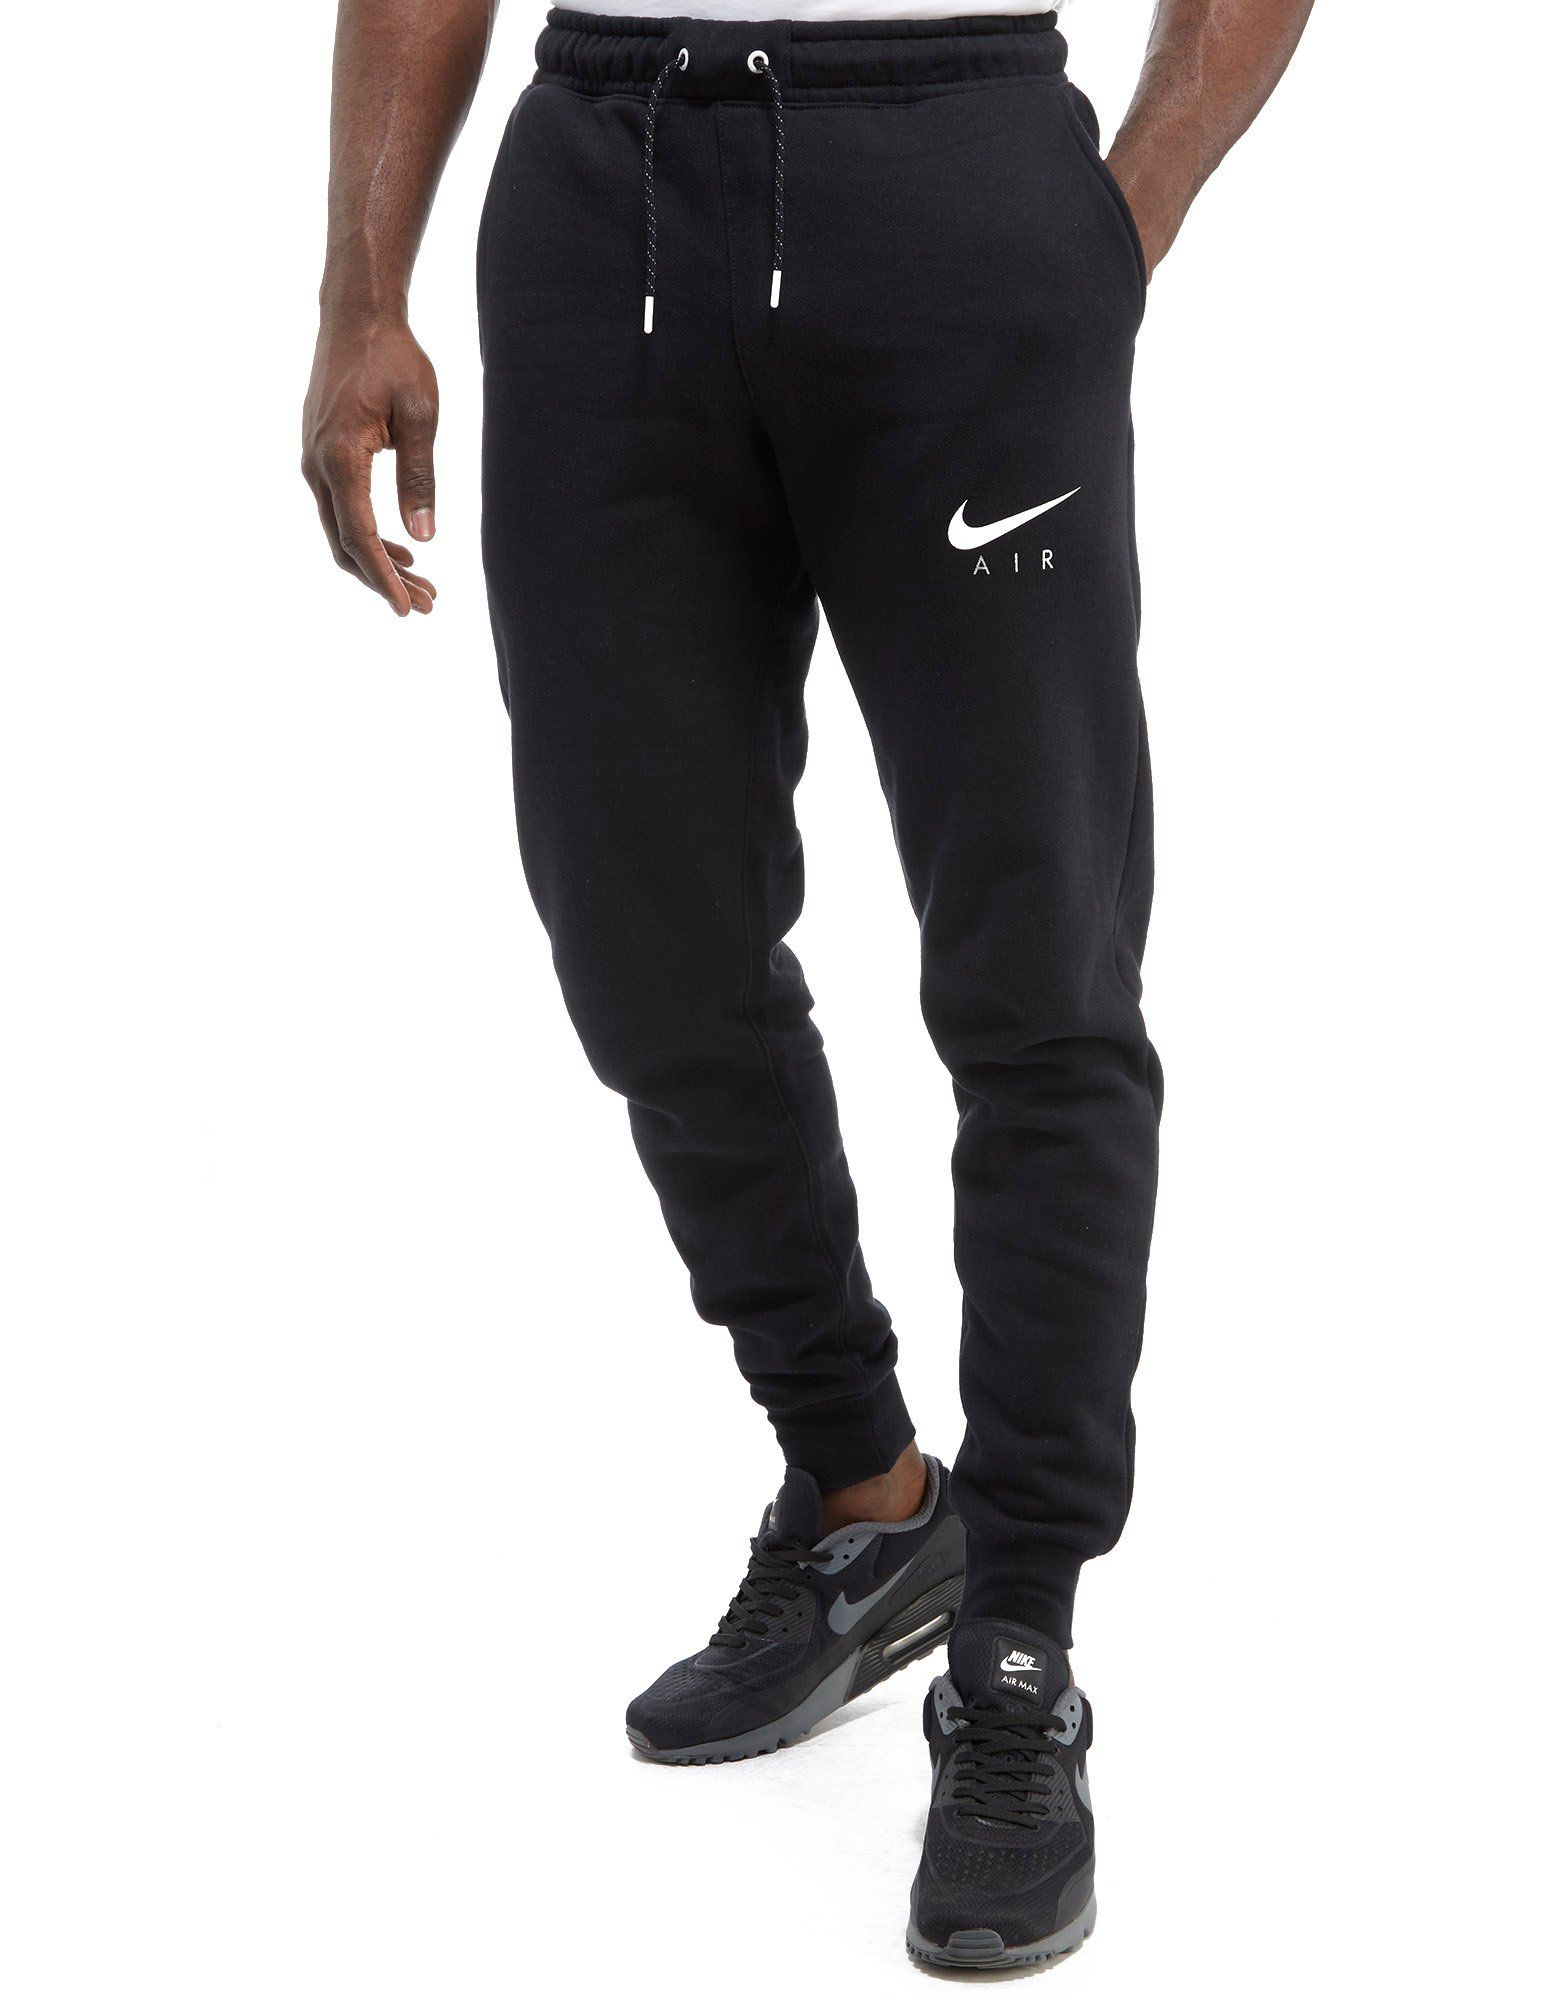 10 Reviews · Nike Air Hybrid Jogging Pants ...